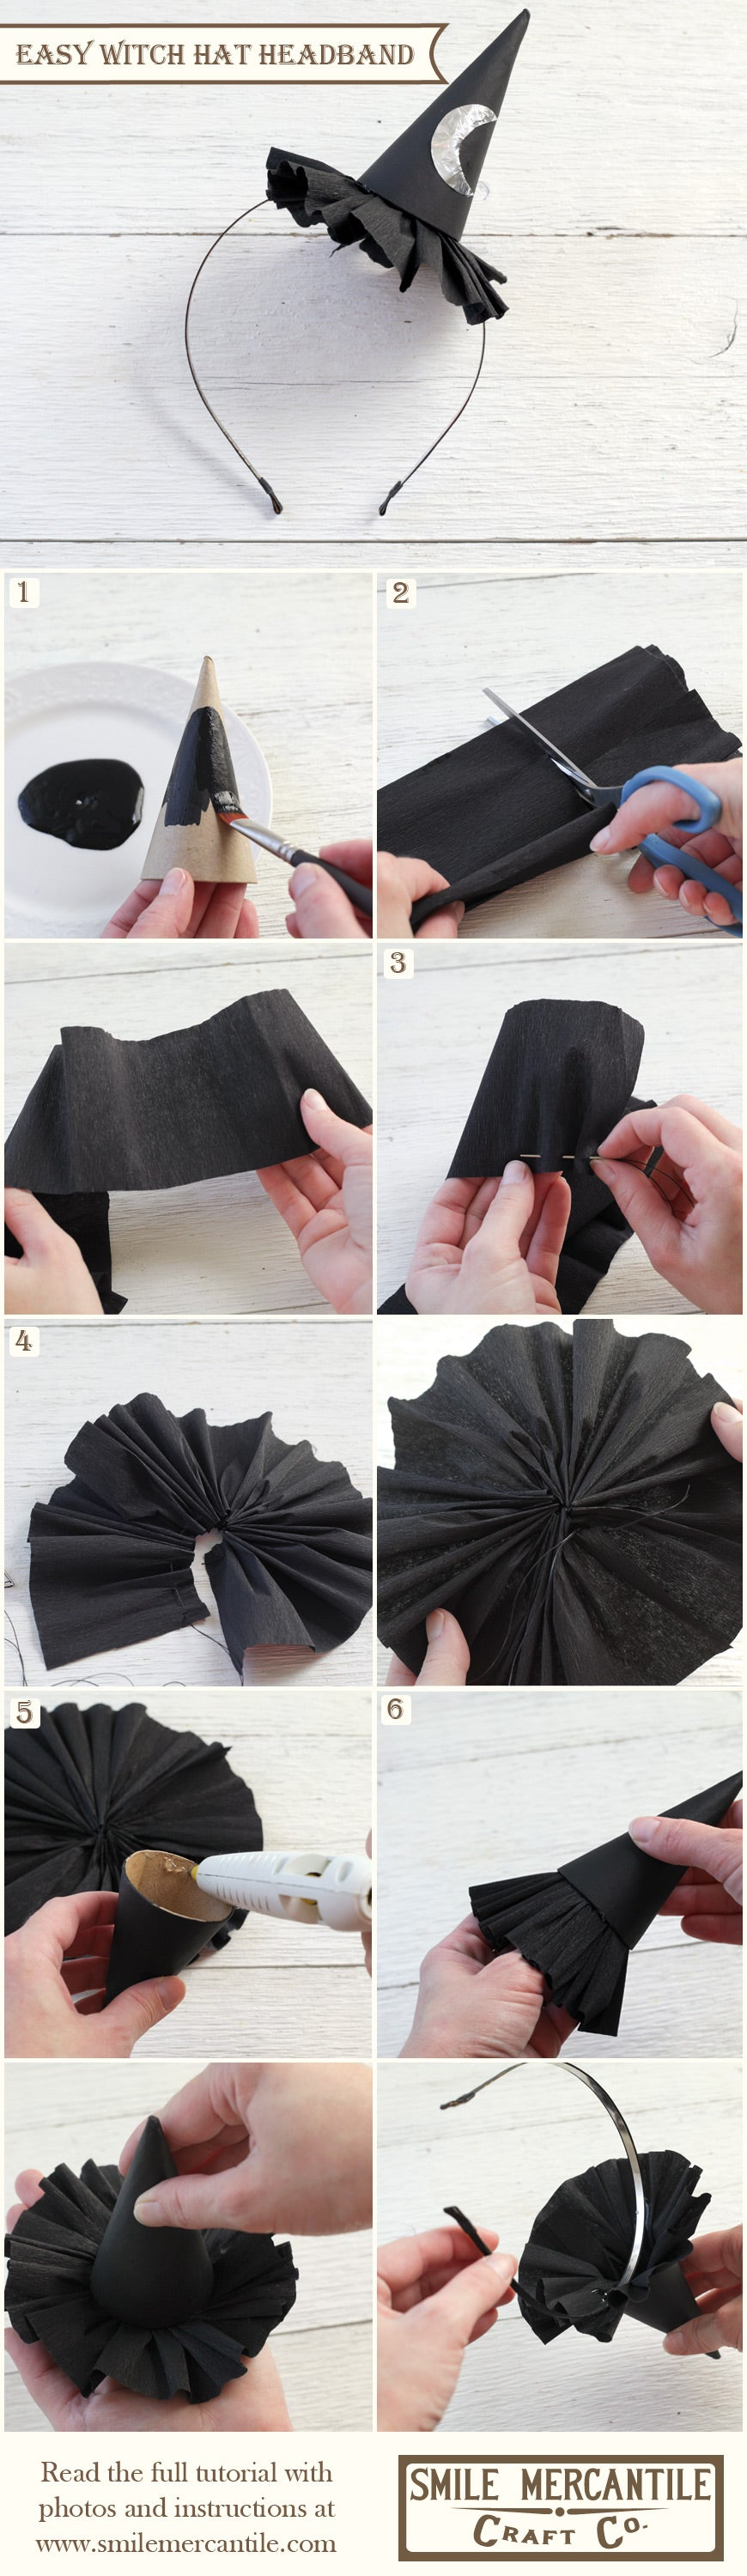 Tutorial: Easy Witch Hat Headband